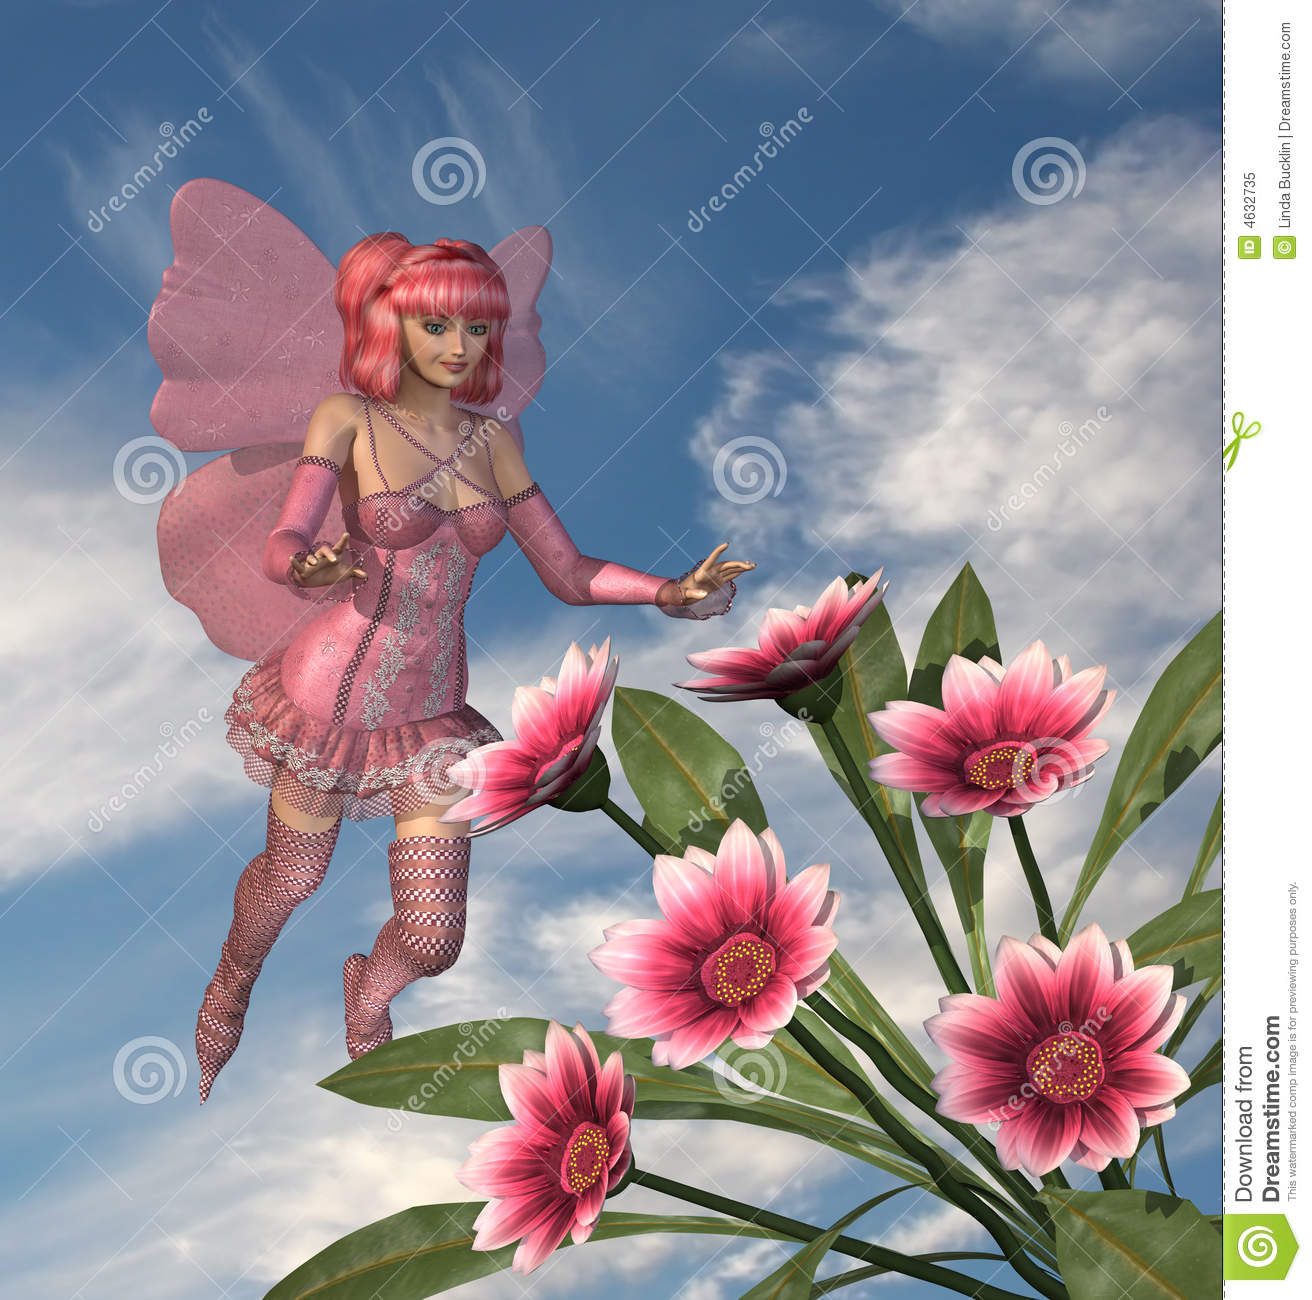 Pink fairy with flowers stock illustration illustration of folklore pink fairy with flowers mightylinksfo